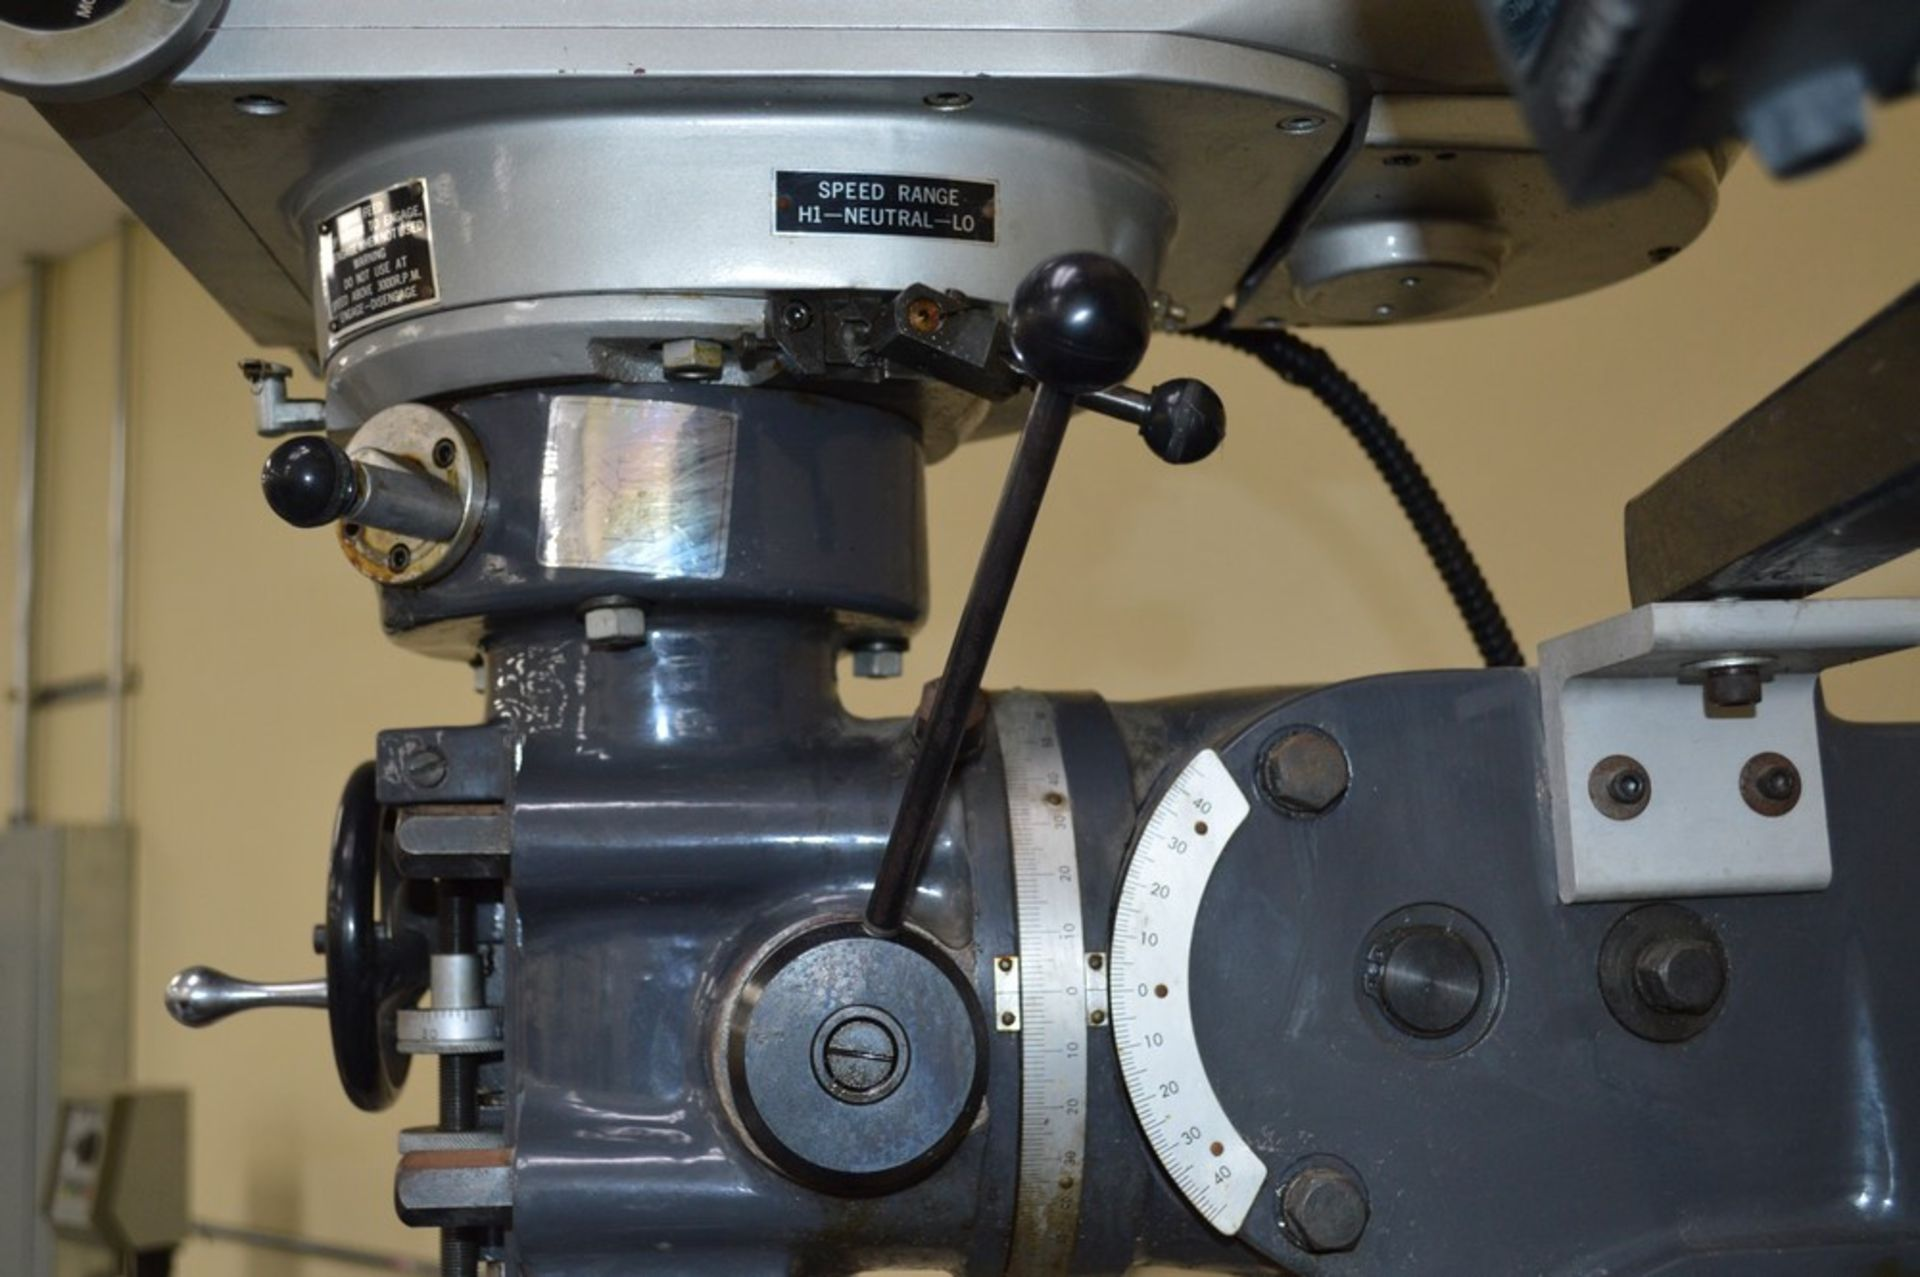 Acer 3 Axis knee mill, tilting head, 2 speed, sony magnescale DRO, Milling setup set, table - Image 9 of 10